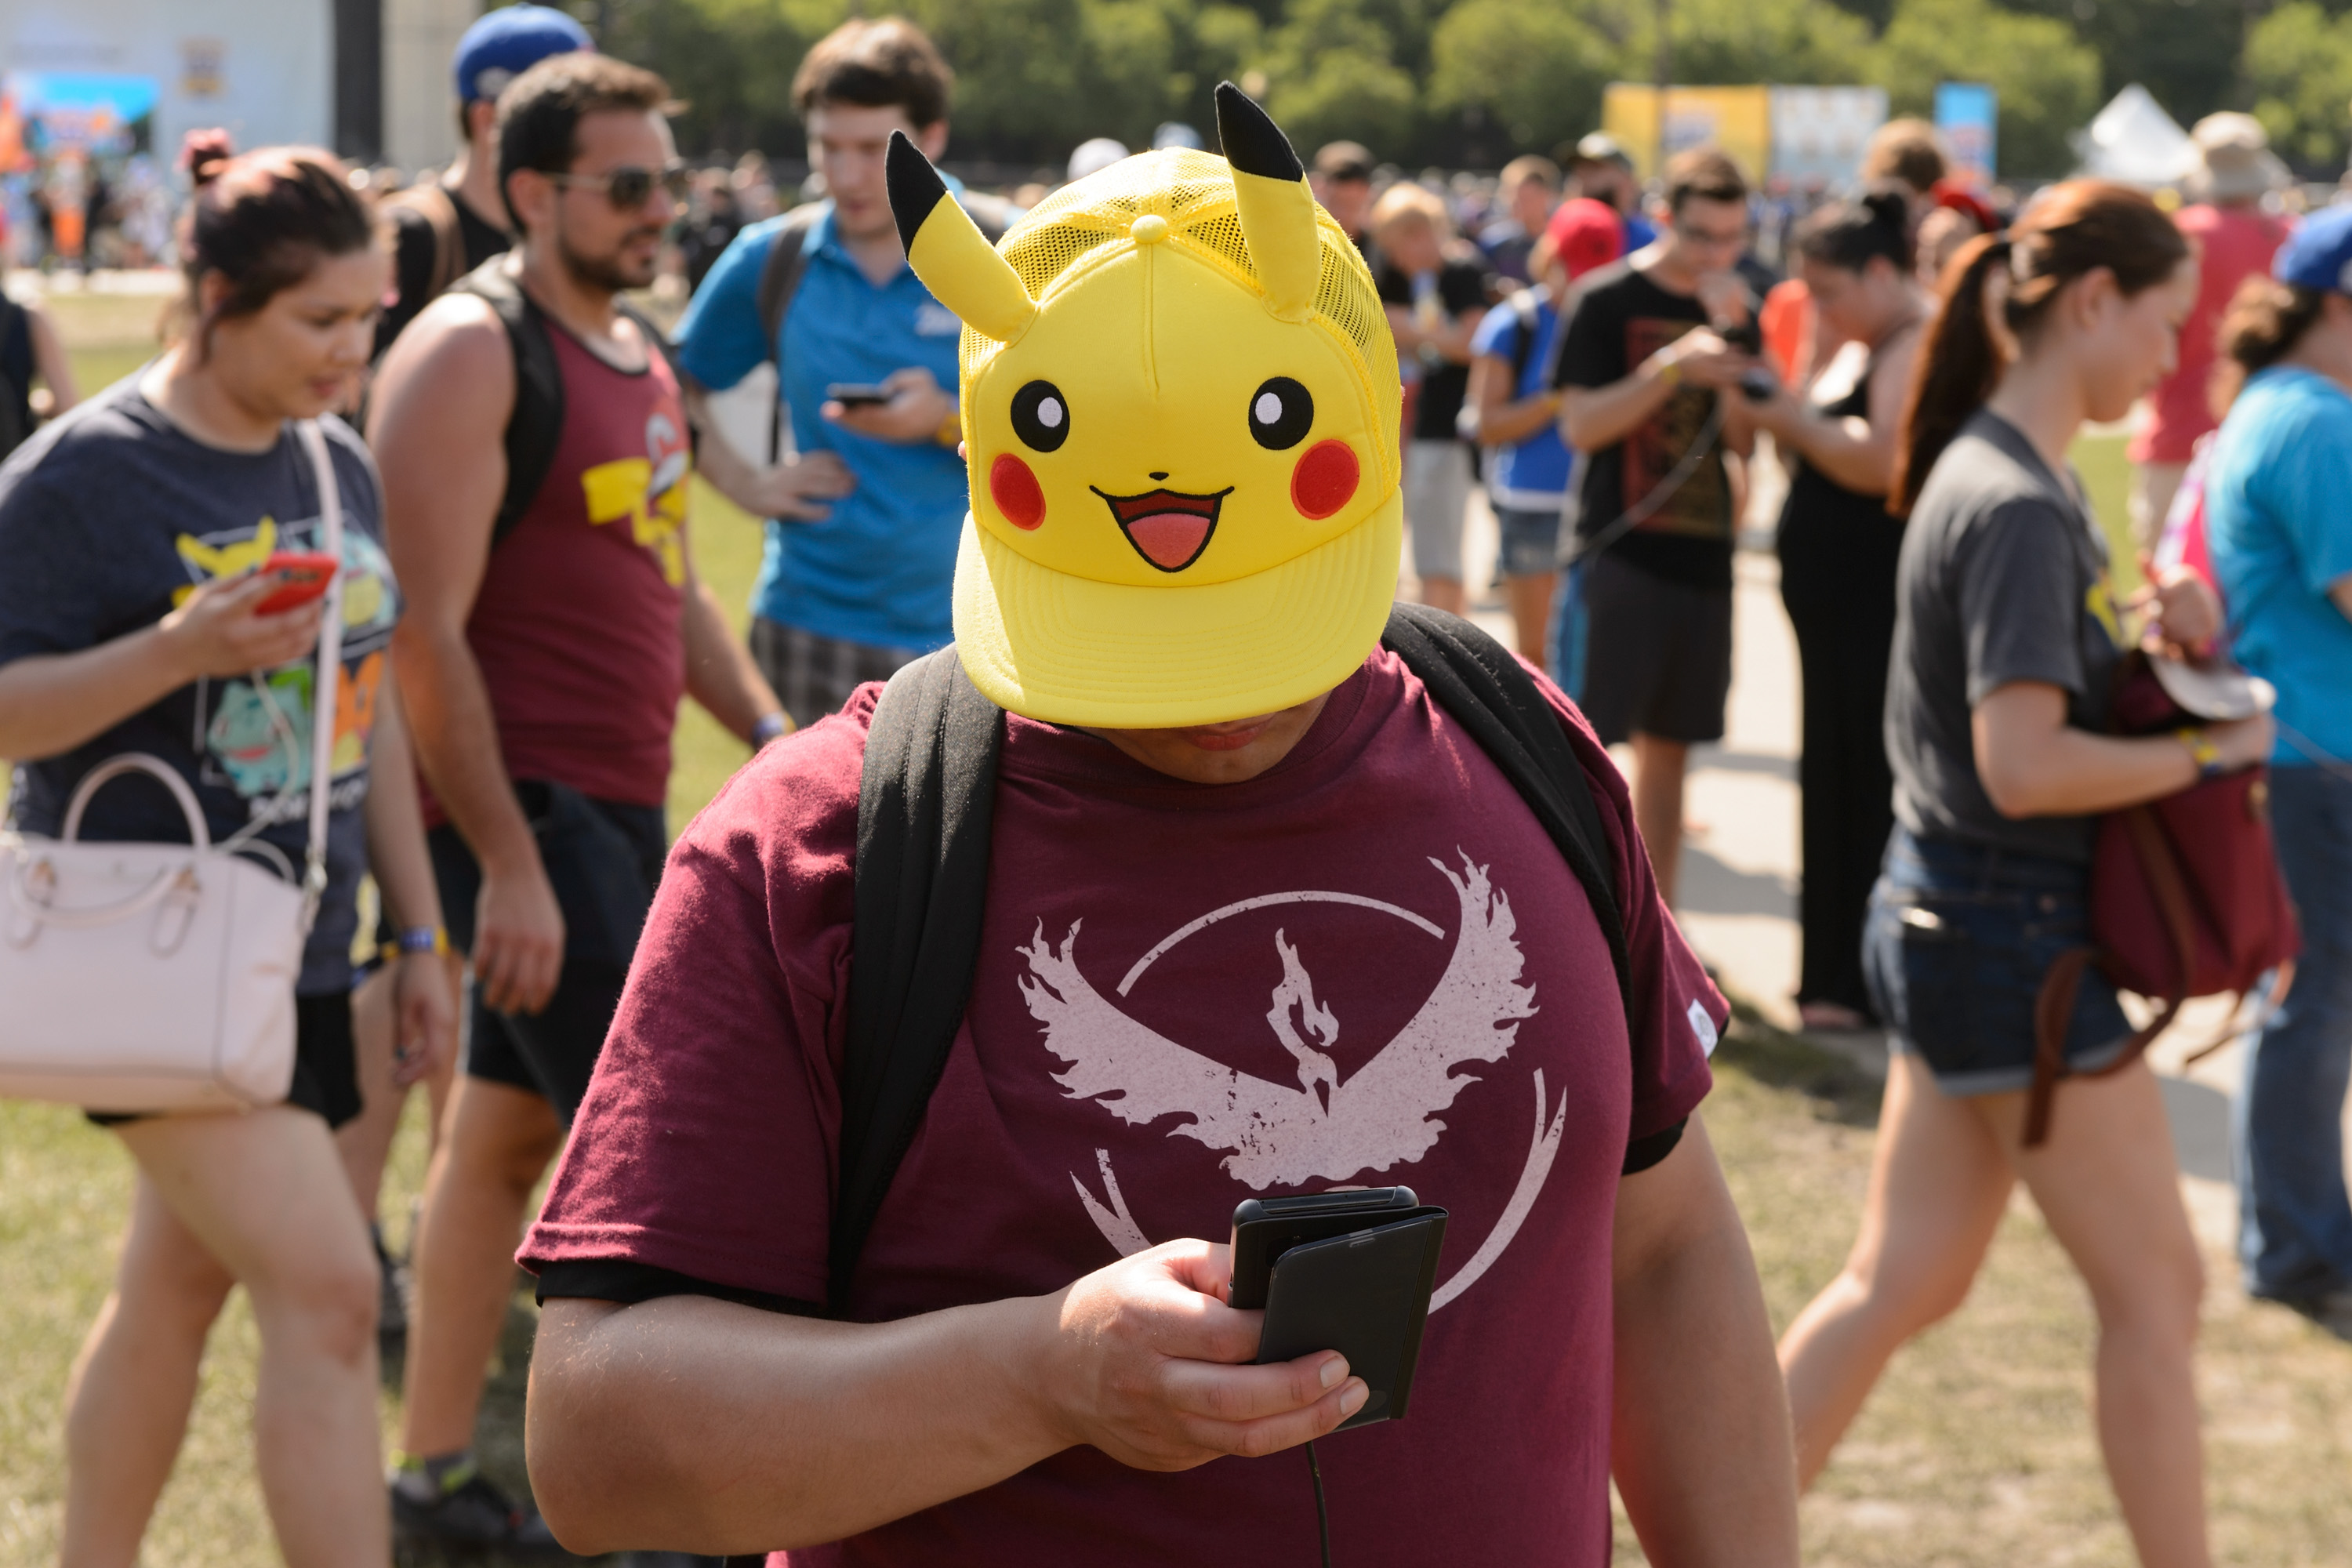 Pokémon GO Fest Returns to Chicago This July | Fortune